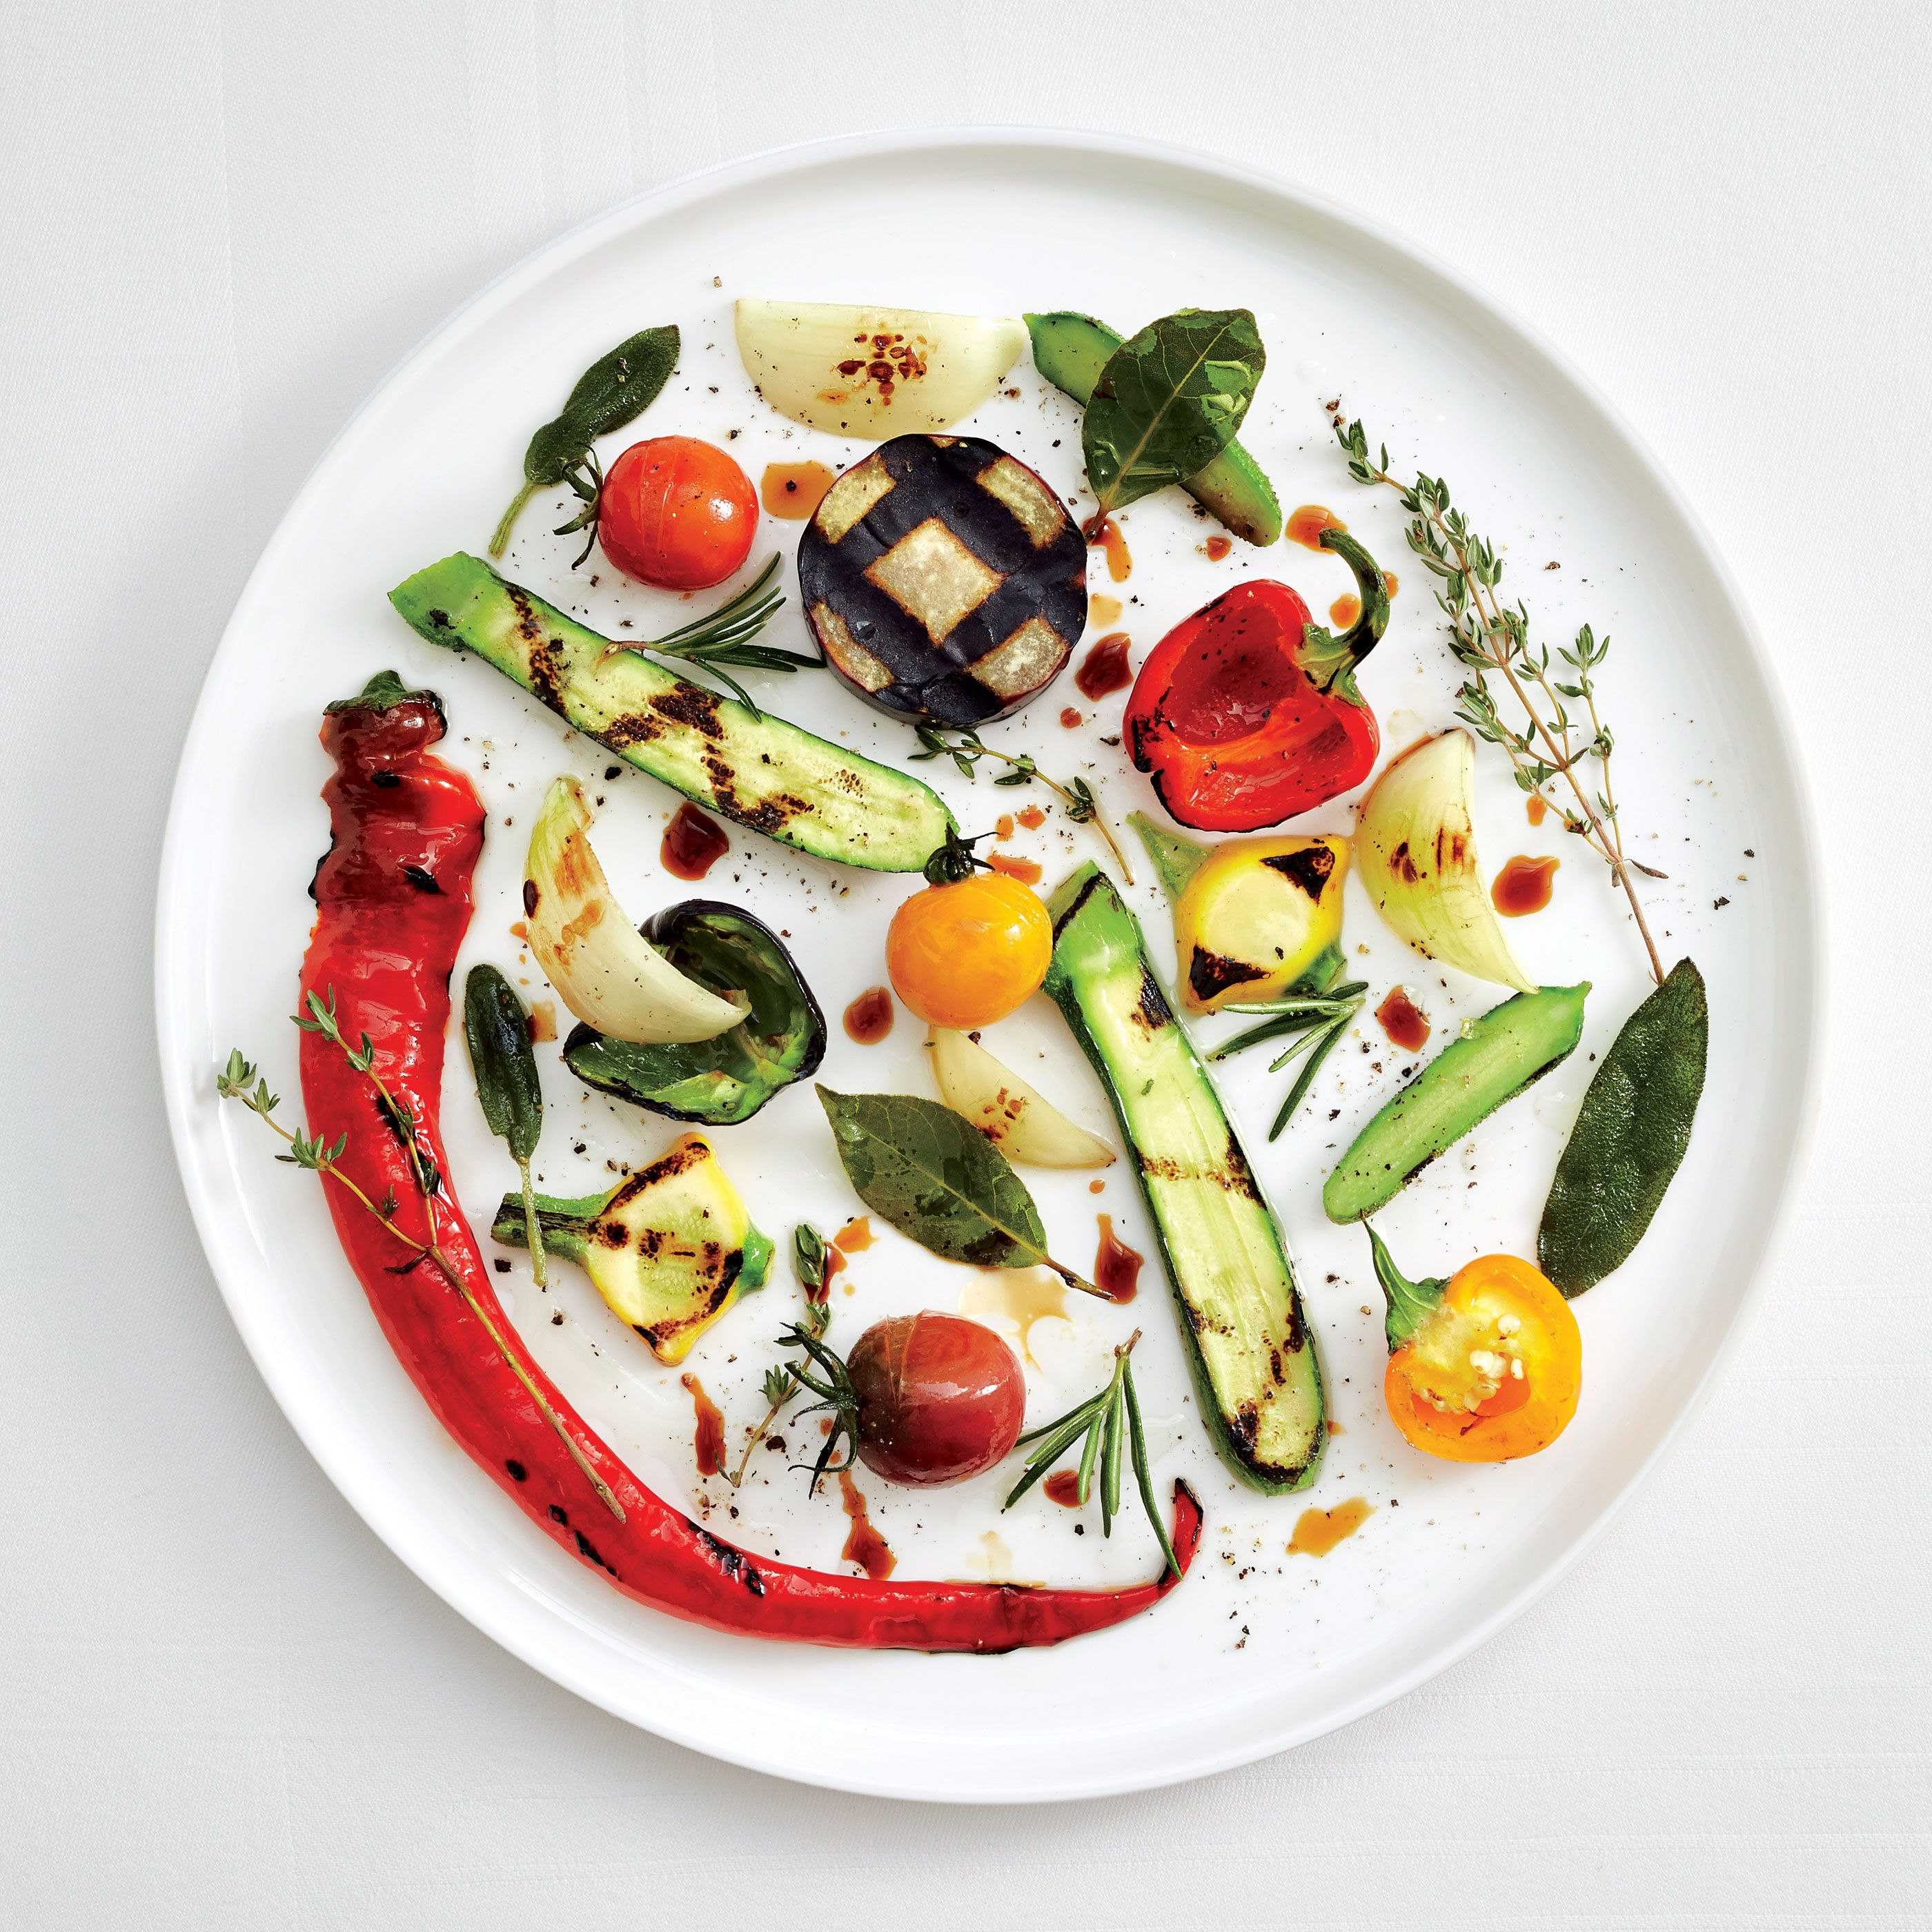 Farmhouse Rules Salad Recipes Alain Passard Exquisite Pinterest Food Art Food And